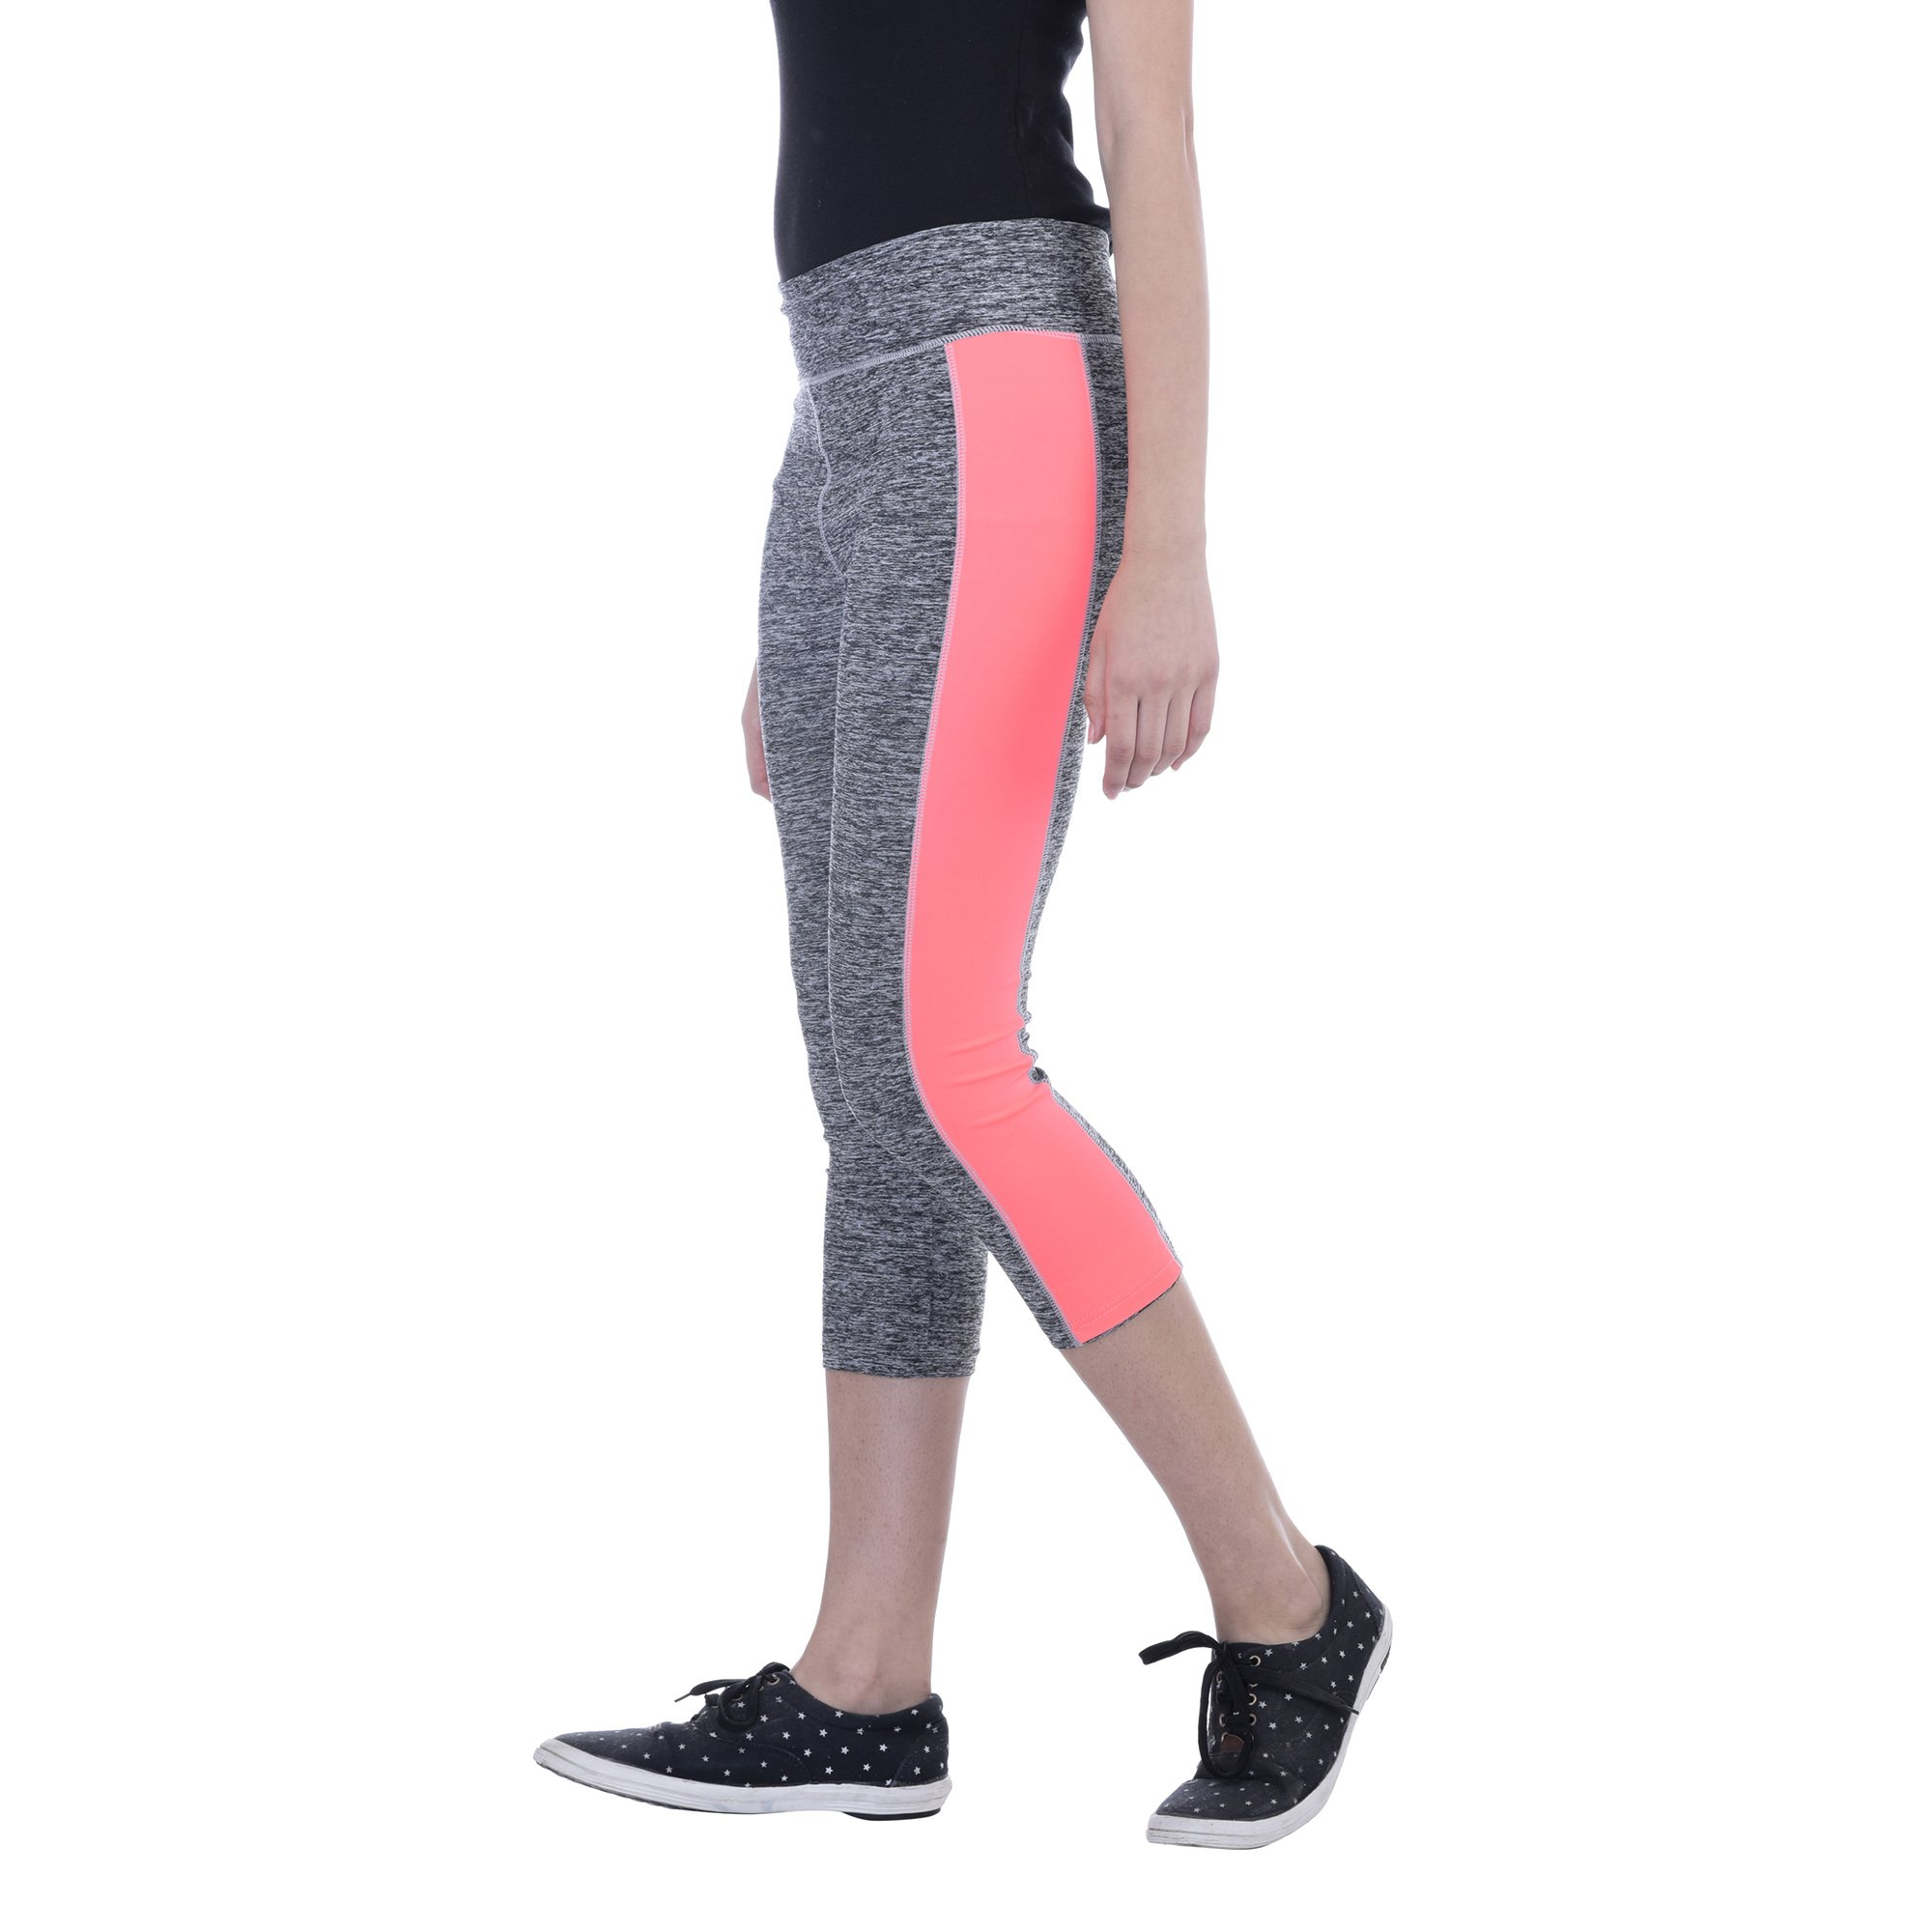 Ezi Women's Athletic Yoga Workout Capri Leggings